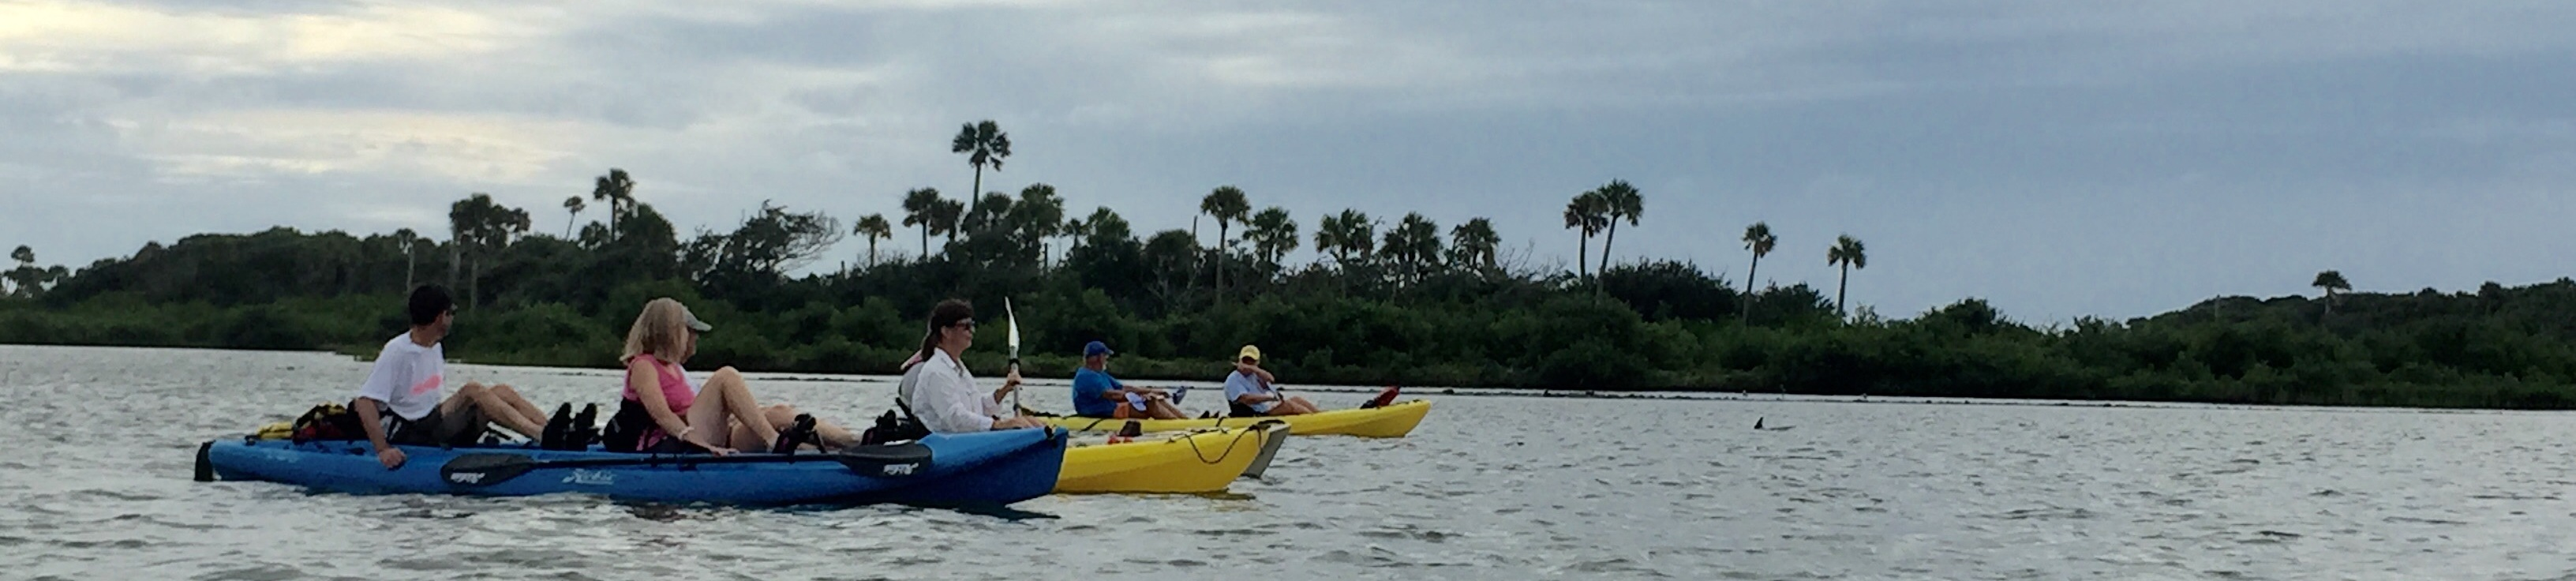 Explore Volusia Kayak program